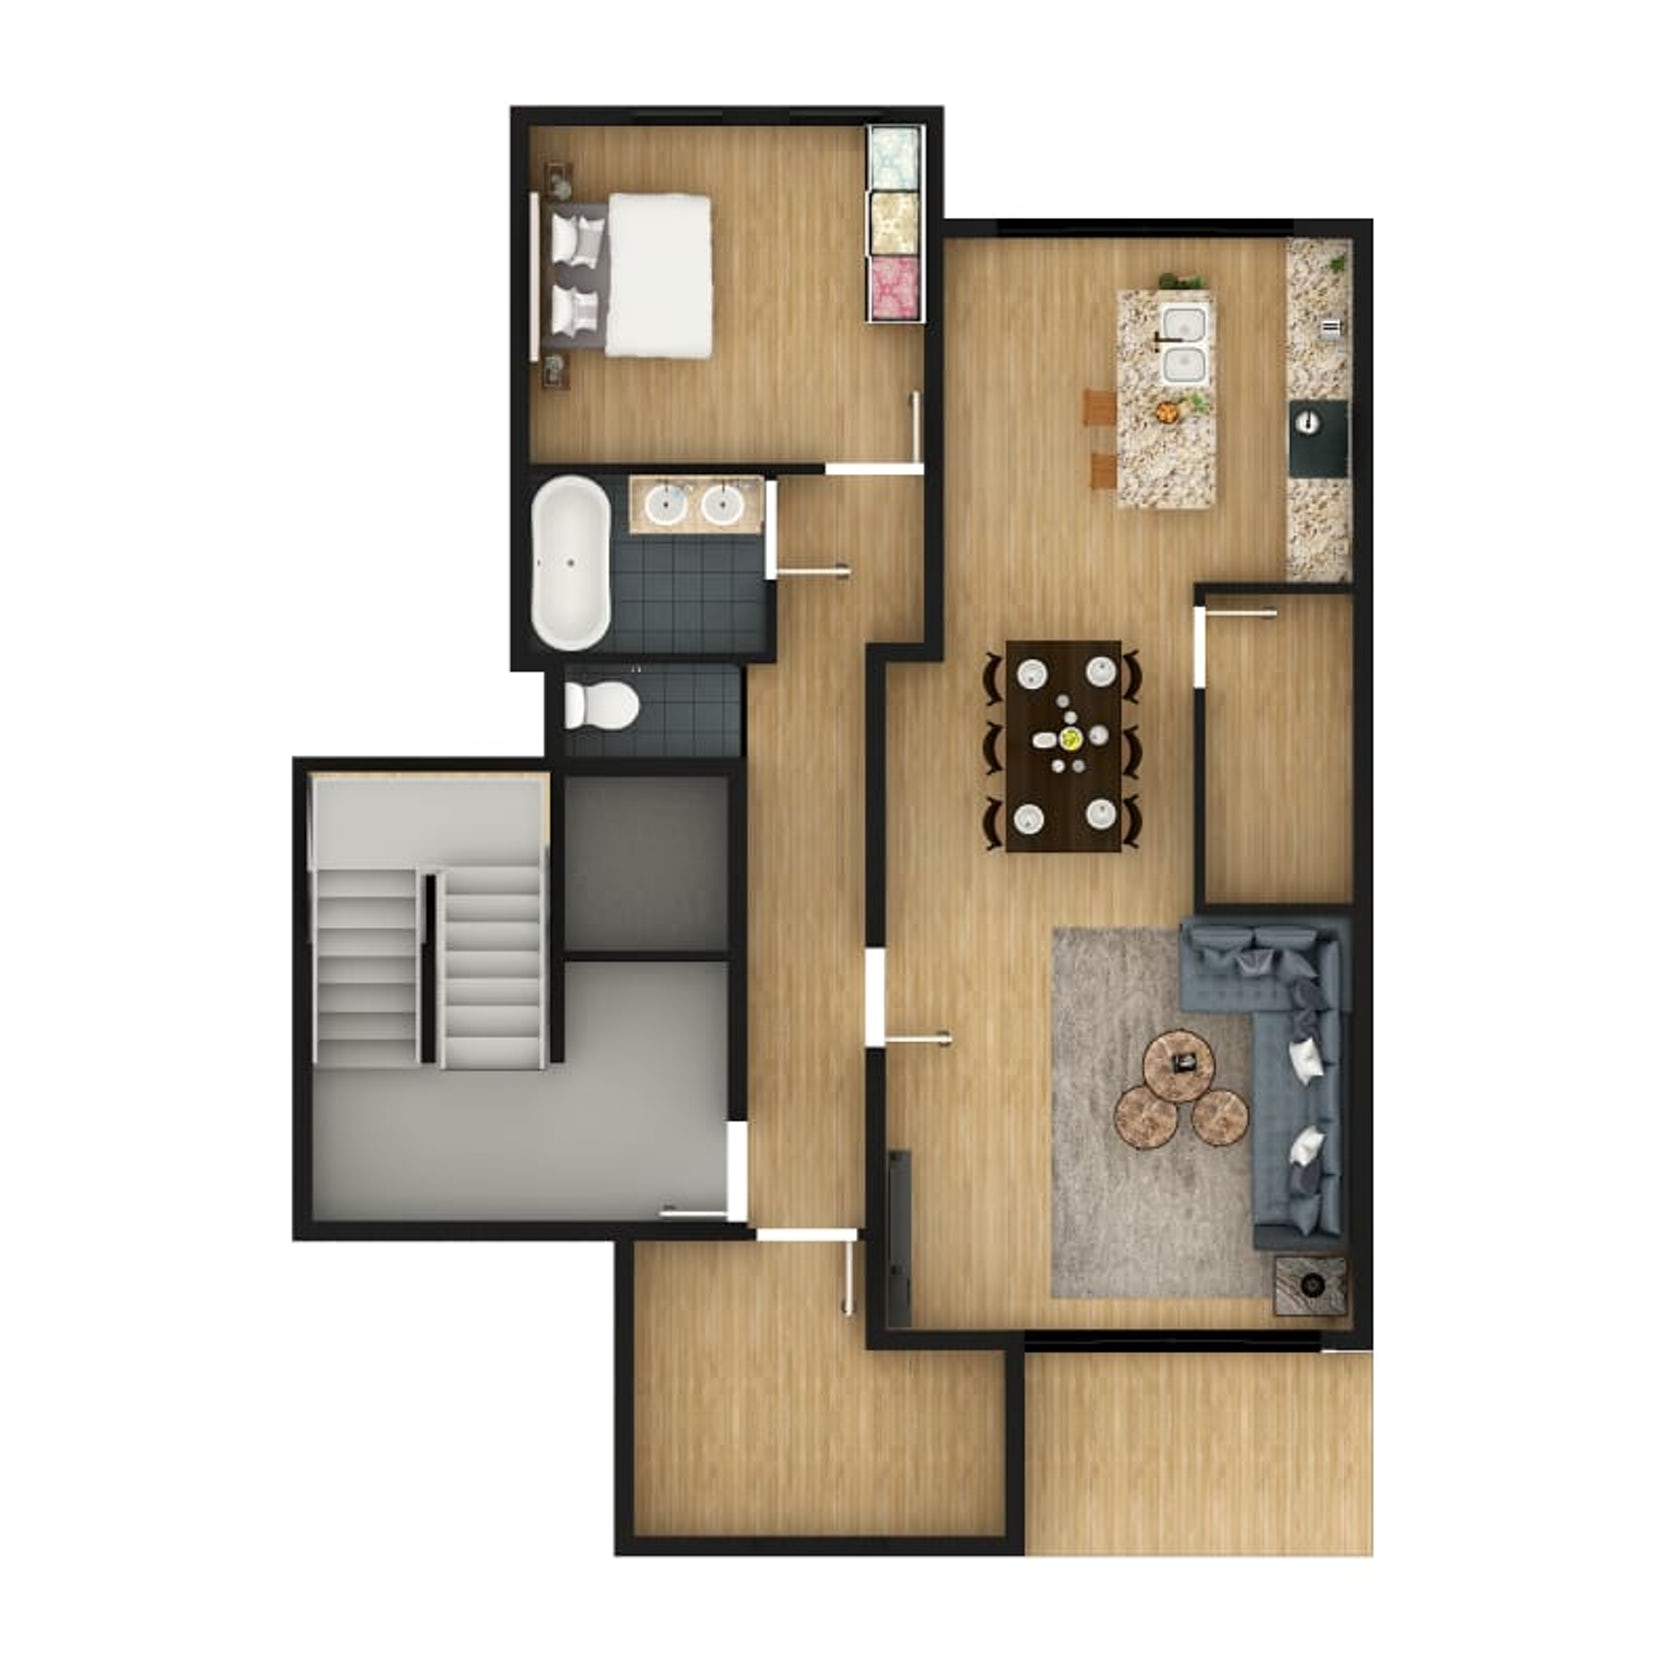 2d Floor Plan Design Rendering Using Photoshop With Custom Texture Furniture By Jmsd Consultant Architectural Visualization Company Architizer